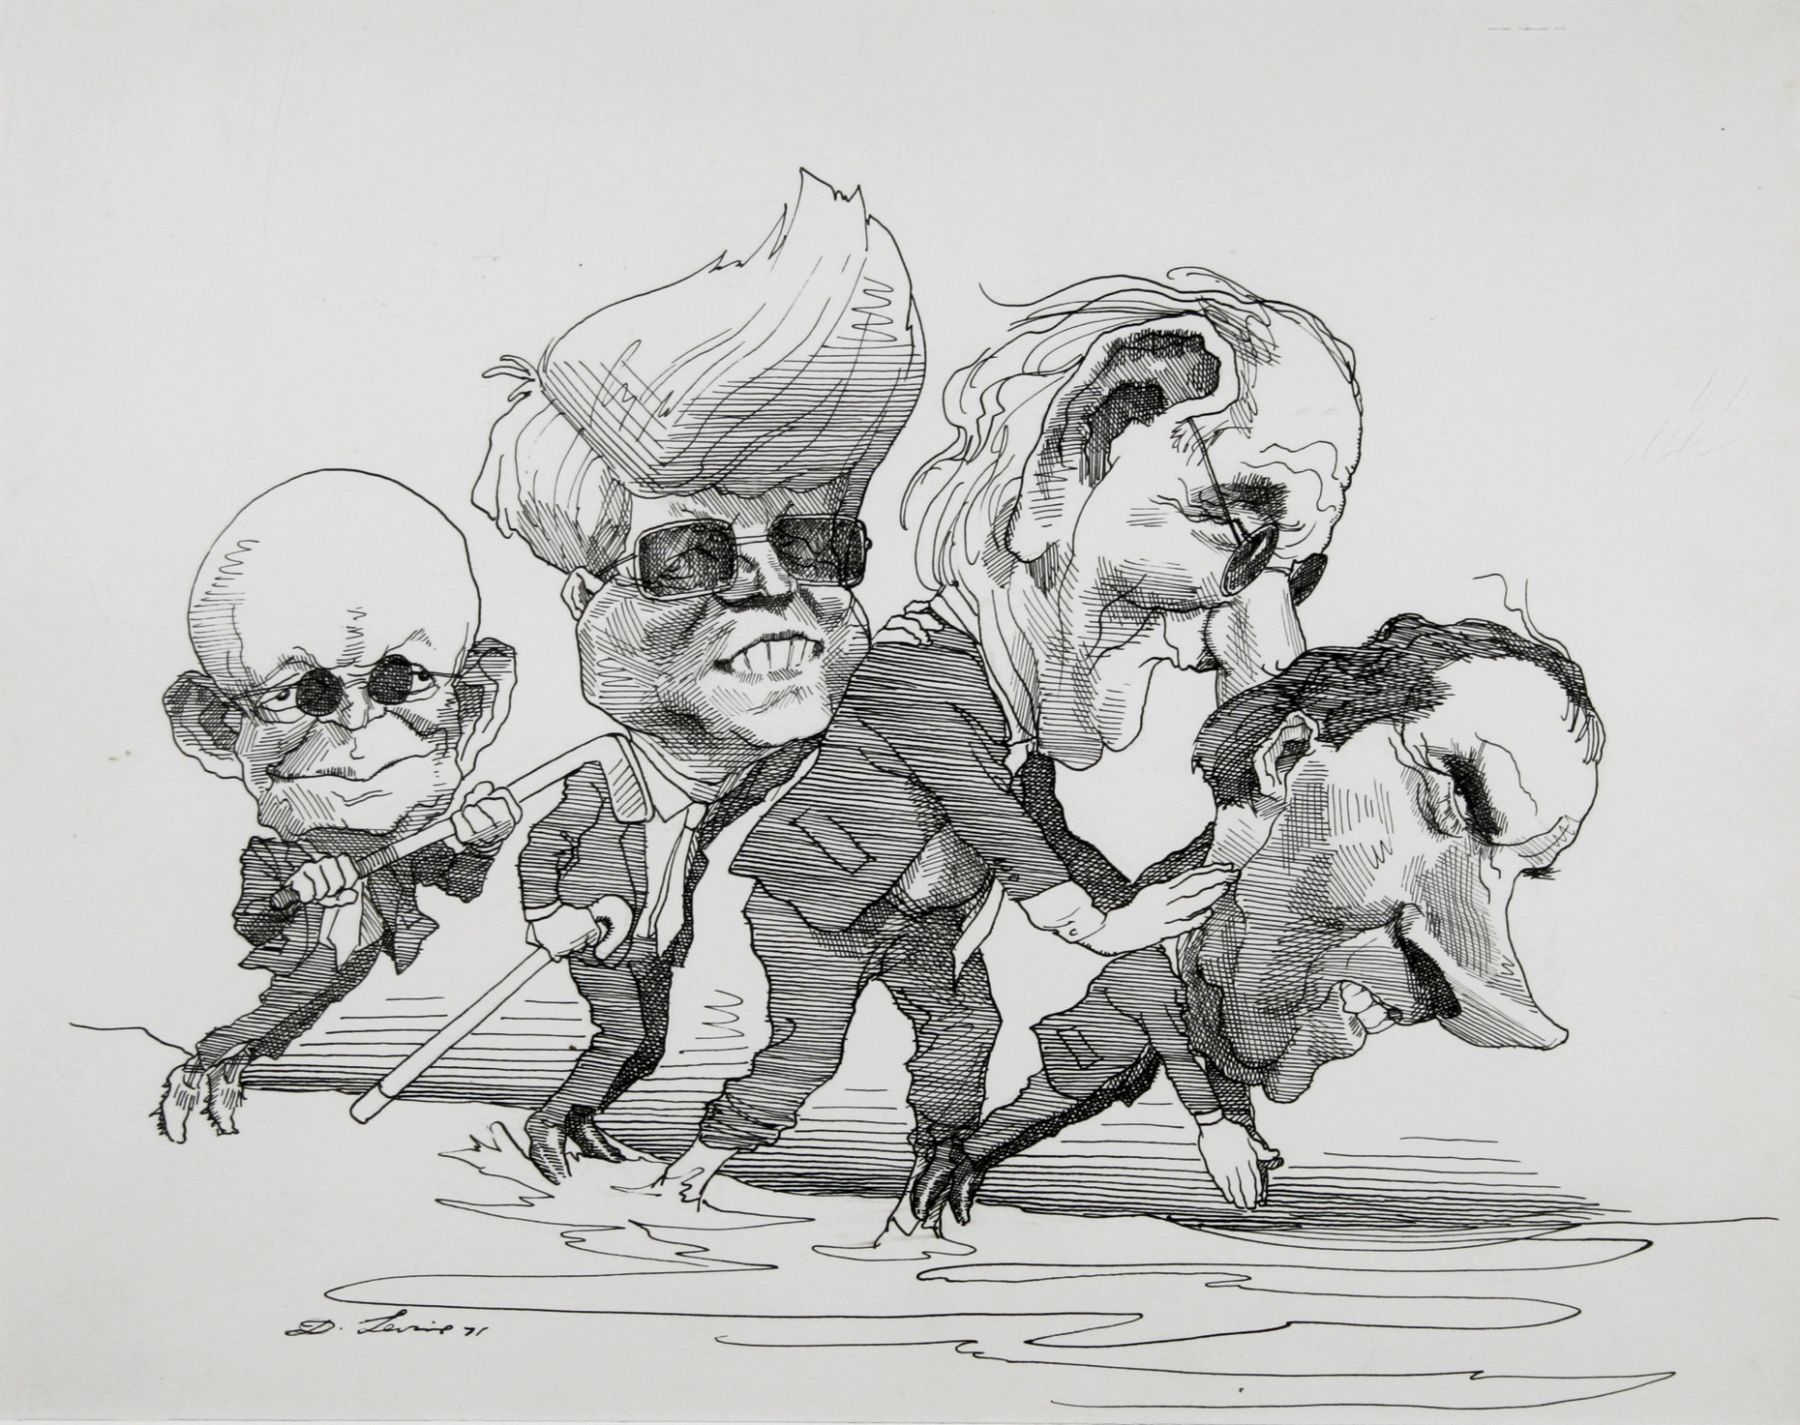 David Levine, The Blind Leading the Blind, 1971, ink on paper, 11 x 13 3/4 inches